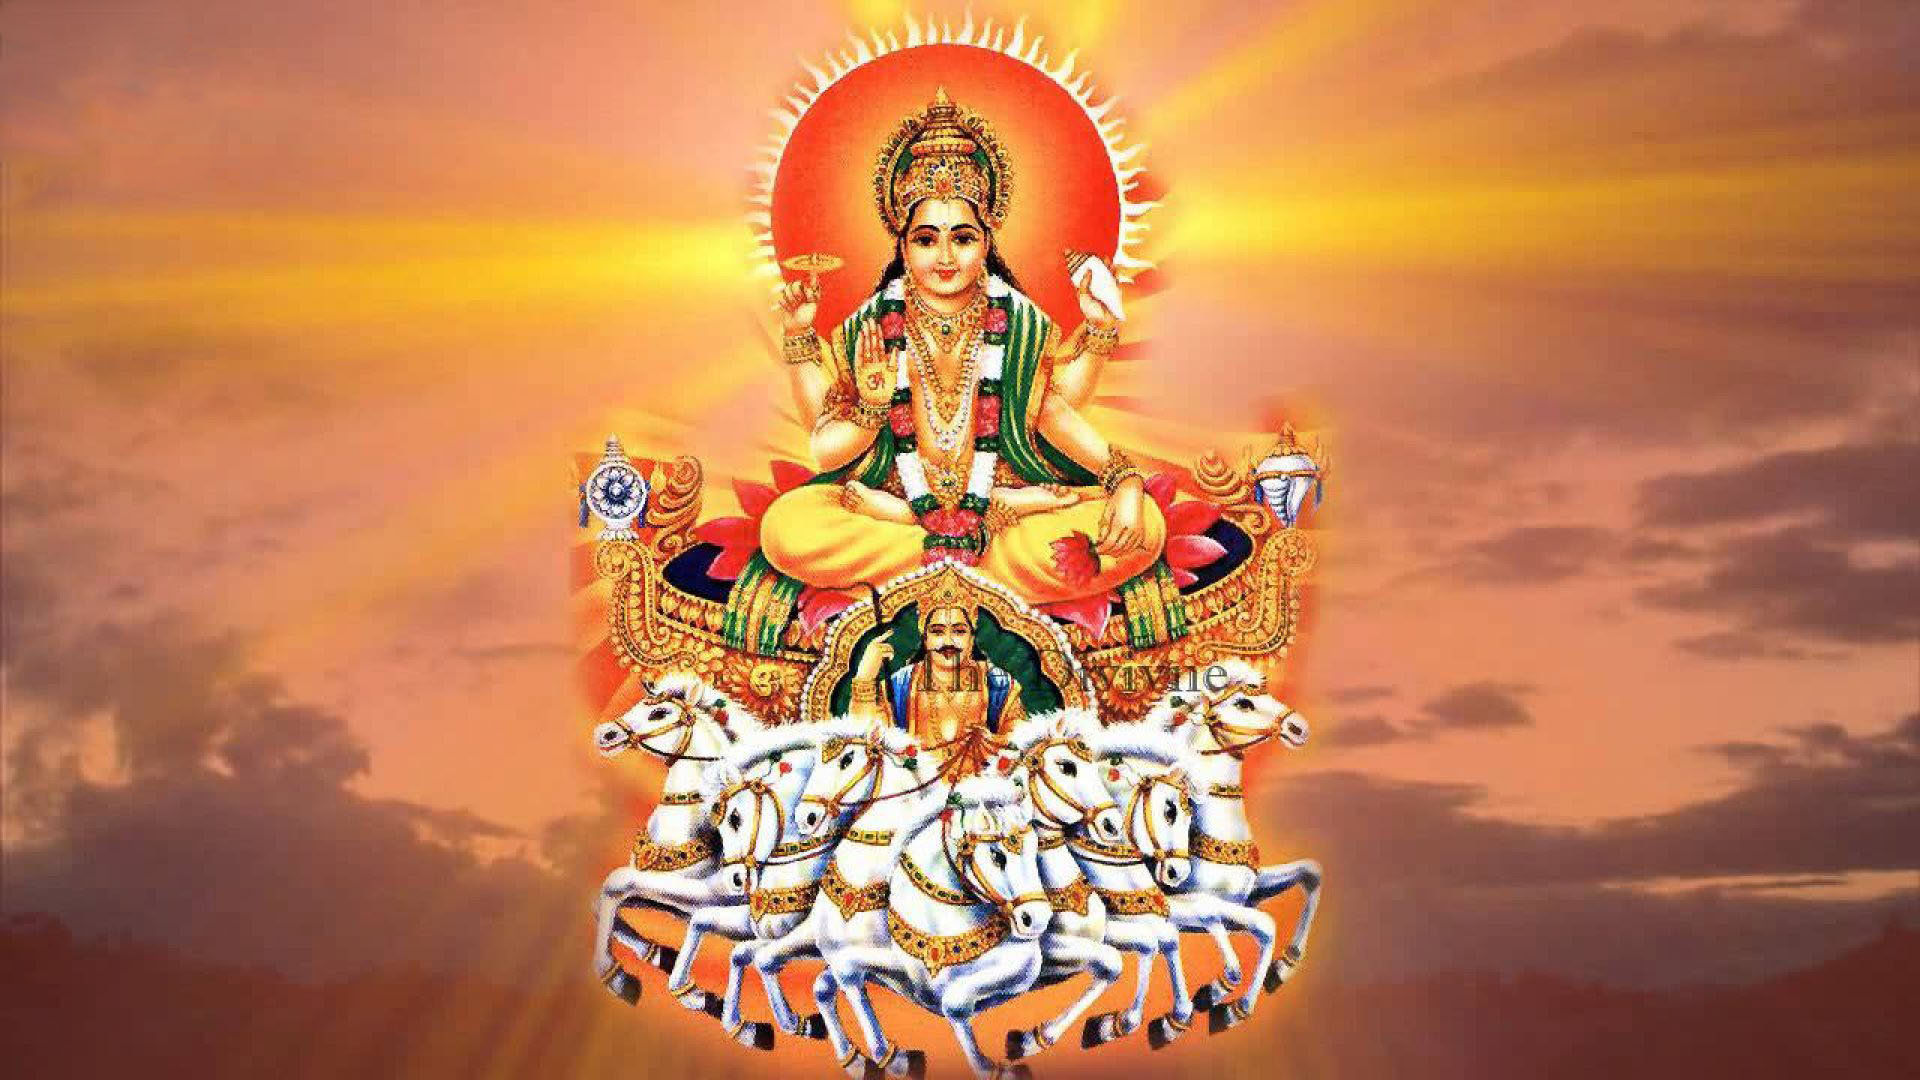 The Movements of the sun and The Reality of the Sungod Surya